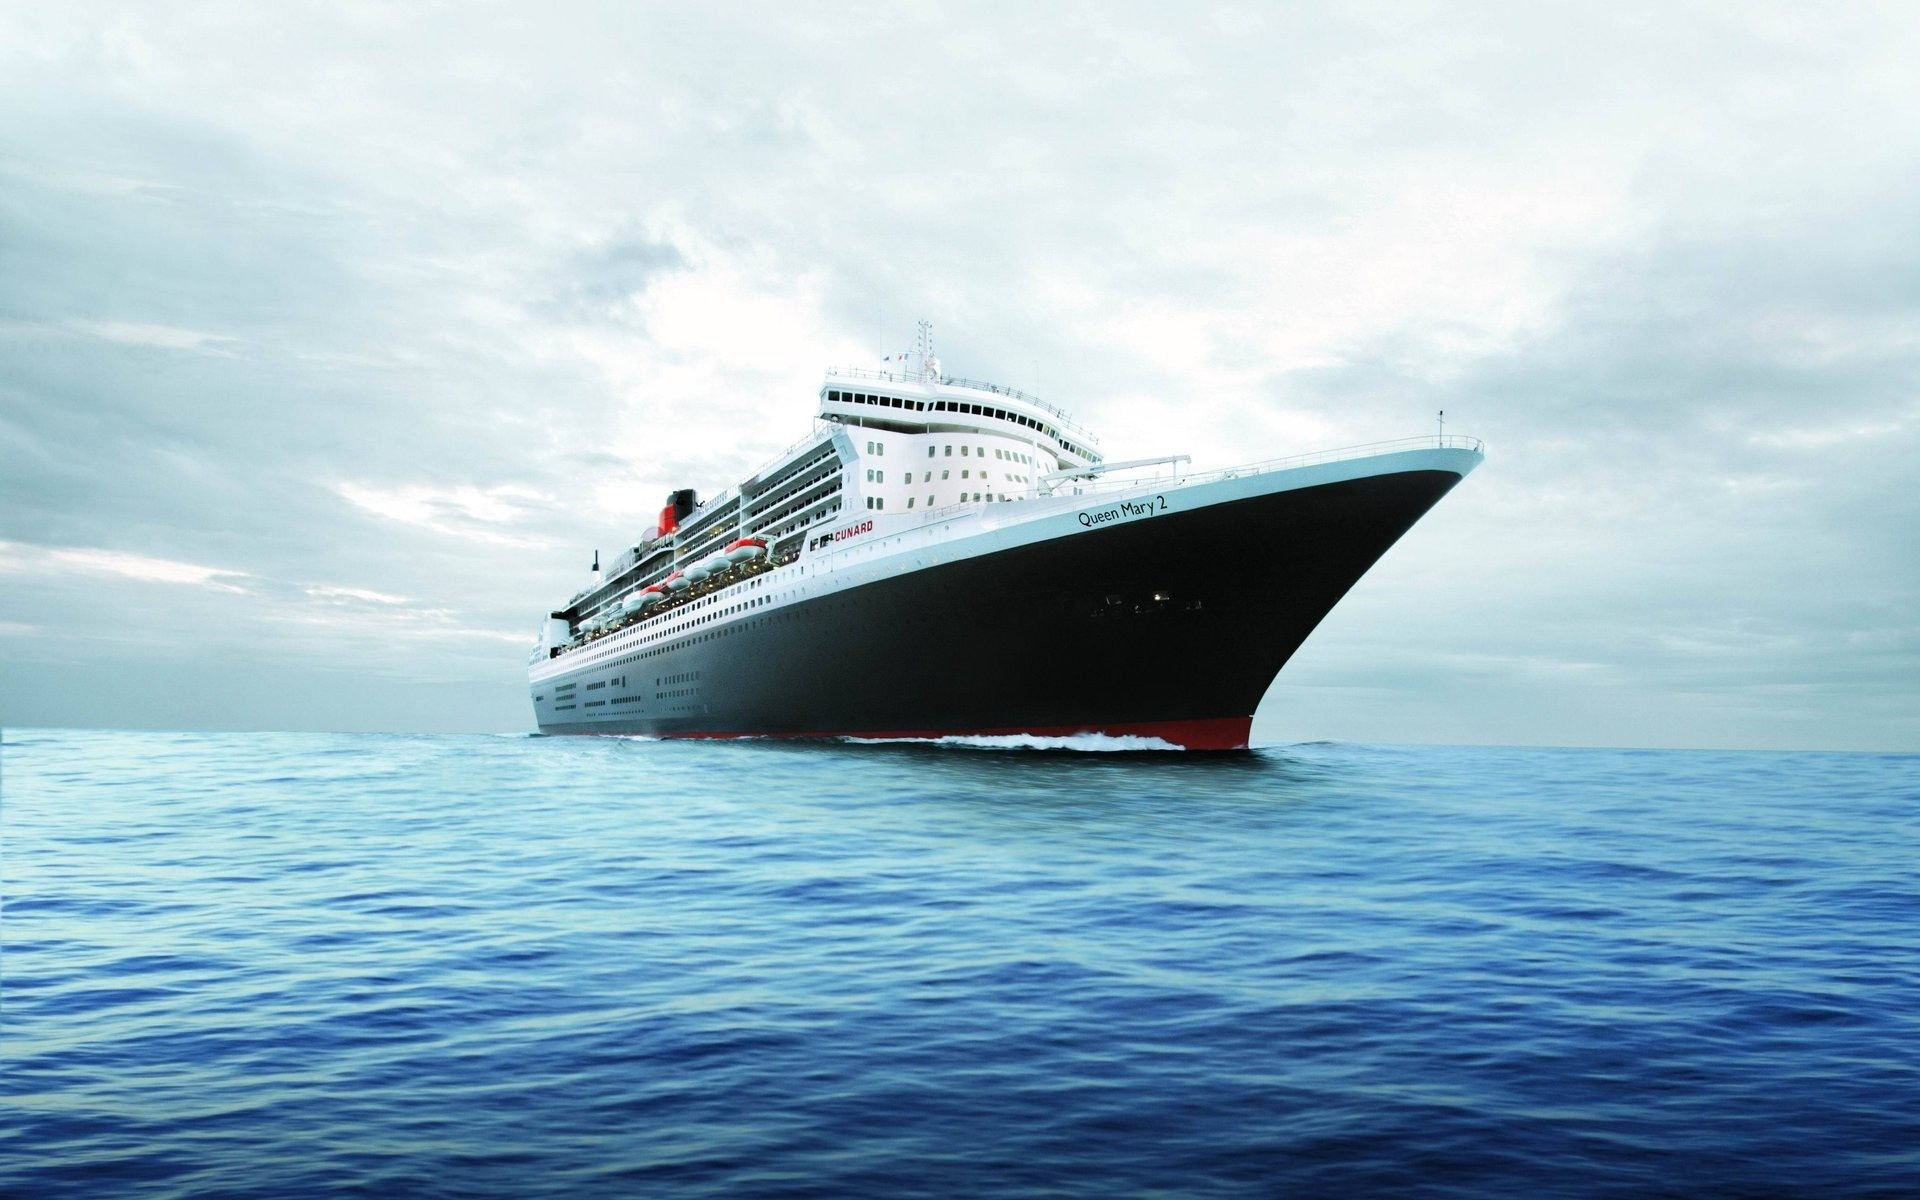 Crucero Queen Mary 2 - 1920x1200